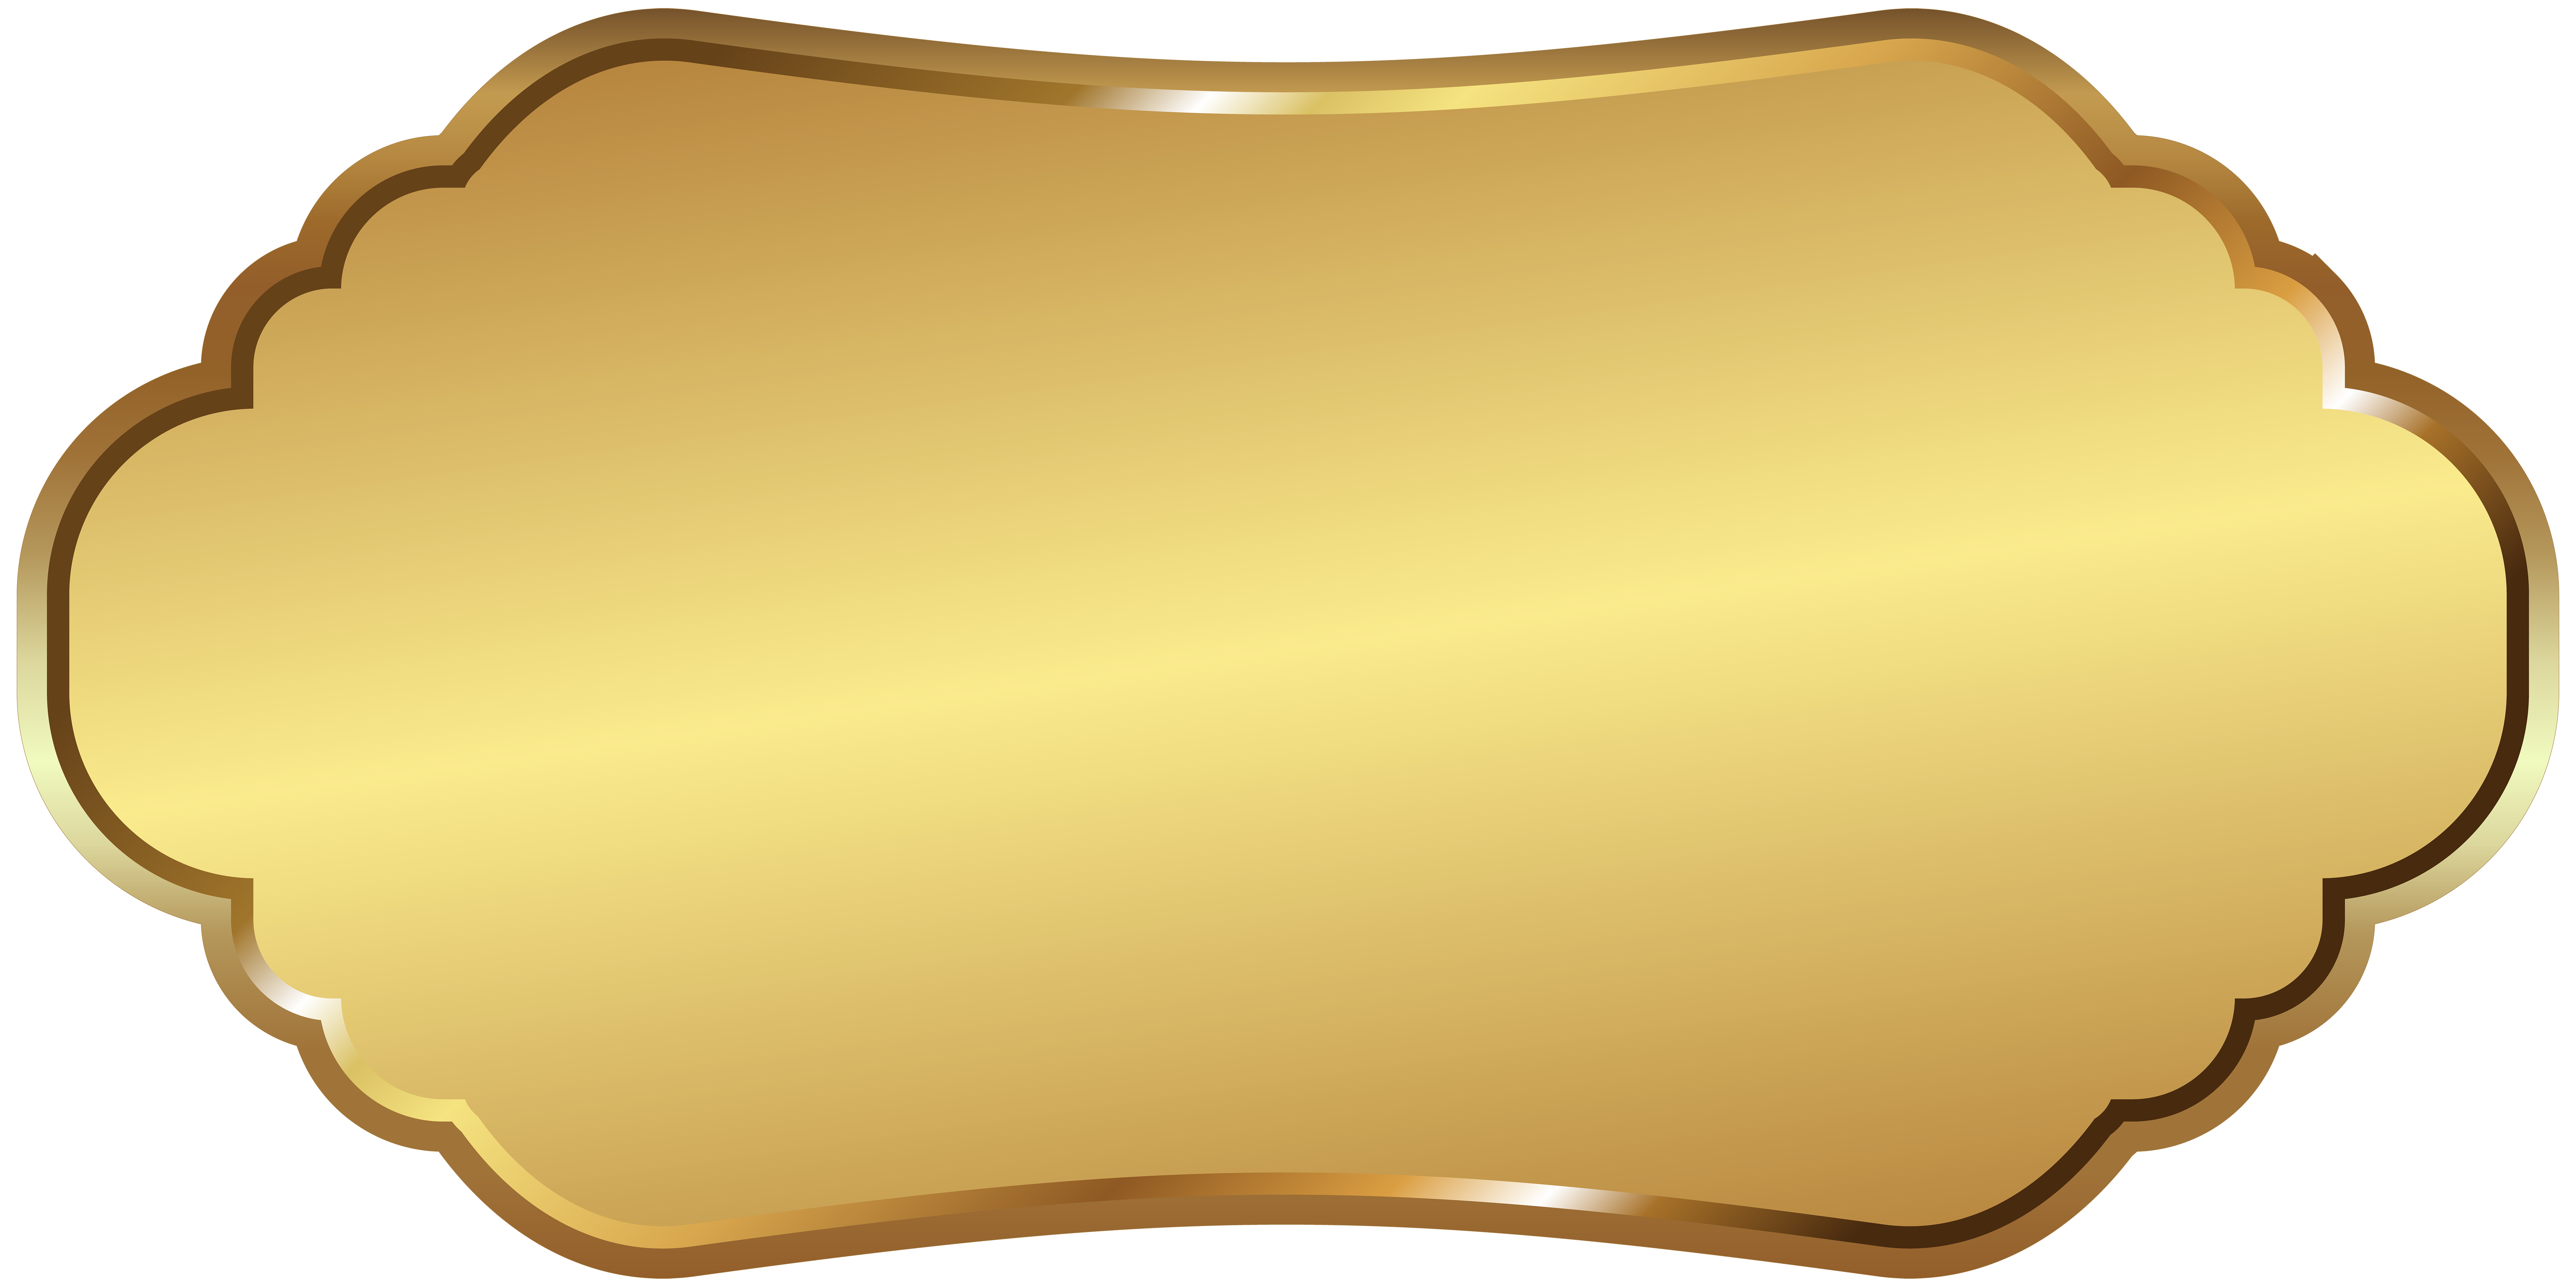 Gold plate png. Label template clip art